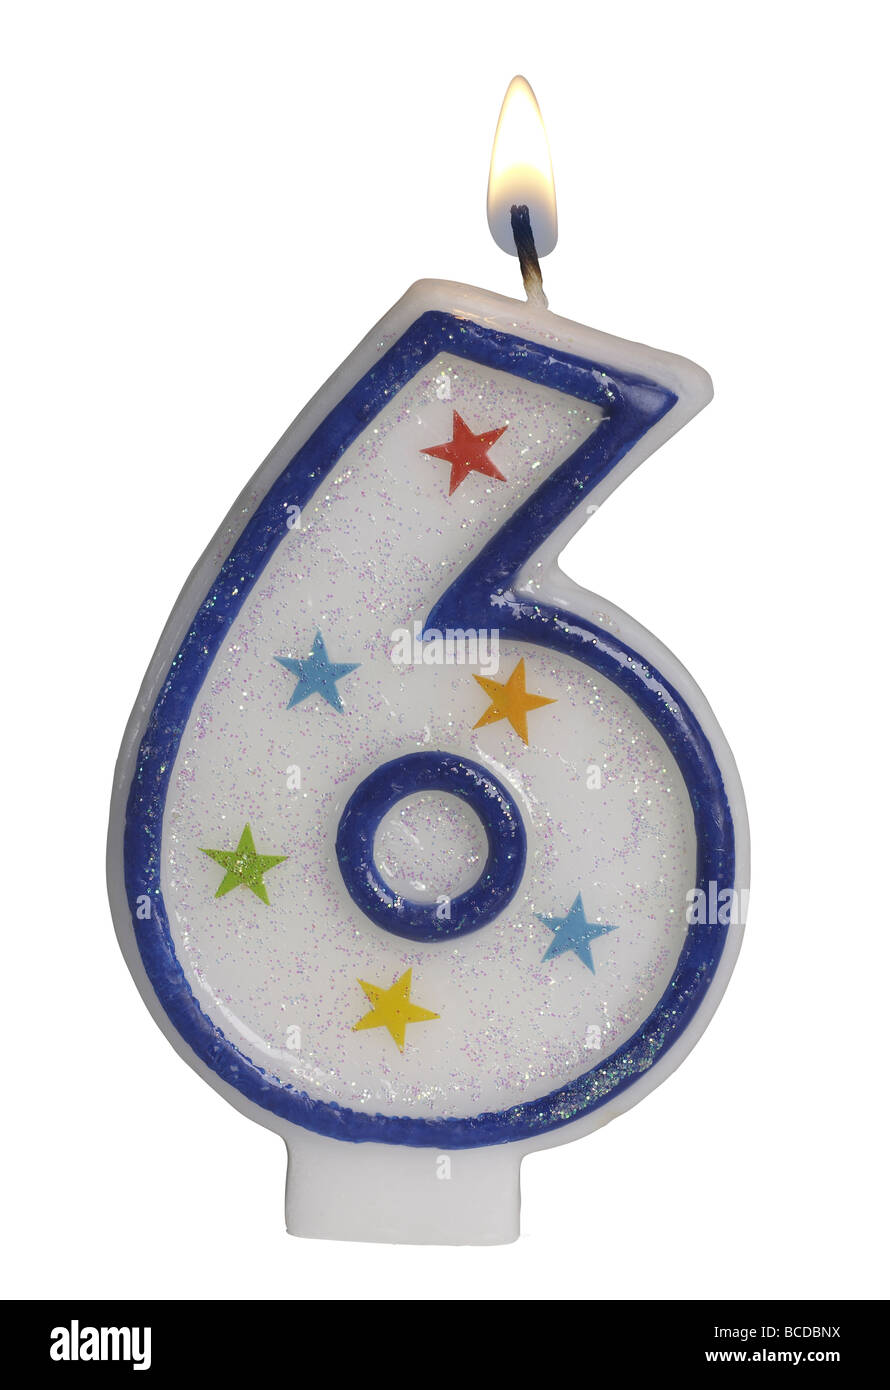 Number 6 Birthday Candle Stock Photo  Royalty Free Image